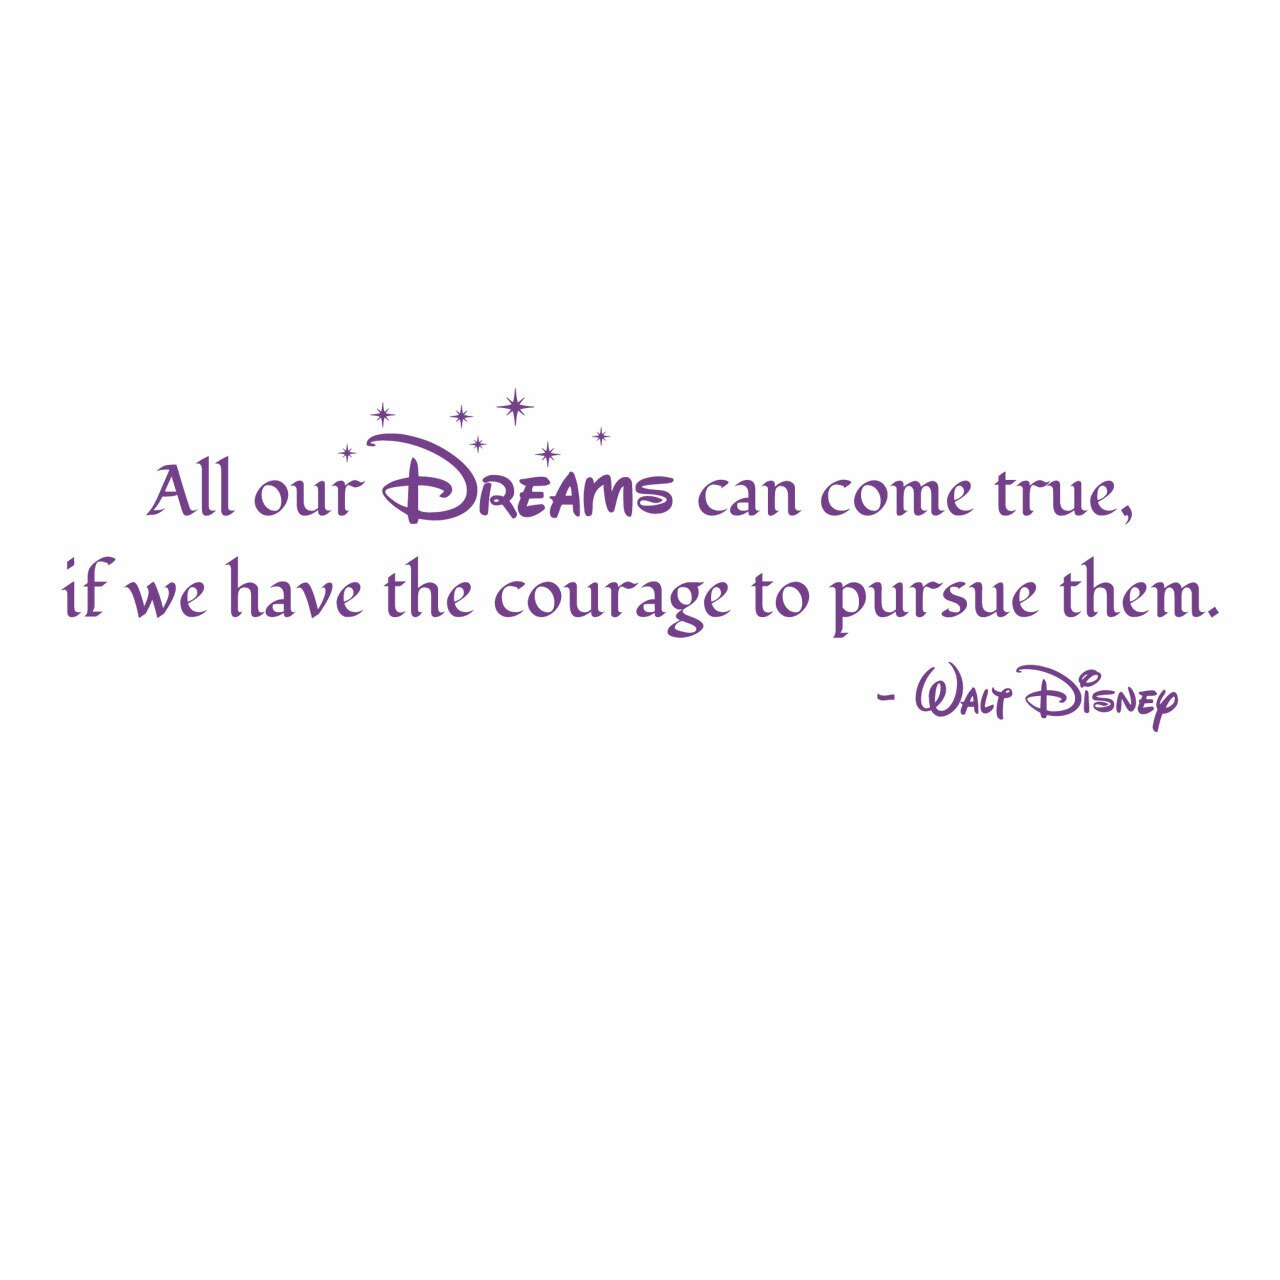 """""""All our Dreams can come true if we have the courage to pursue them."""" -Walt Disney written in violet on a white background"""